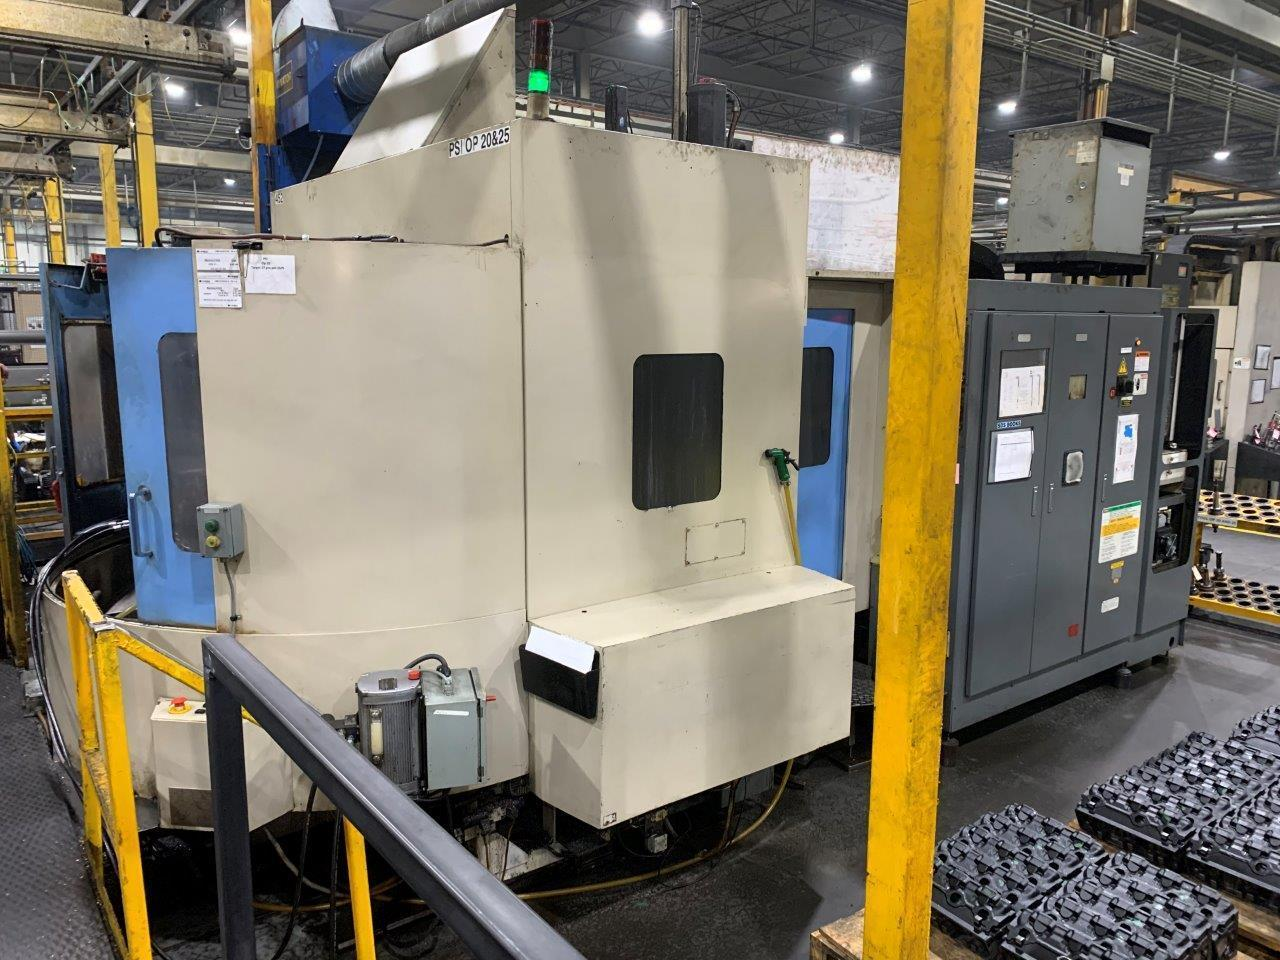 TOYODA FA-630 HORIZONTAL MACHINING CENTER, HIGH PRESSURE THROUGH SPINDLE COOLANT, YEAR 2004